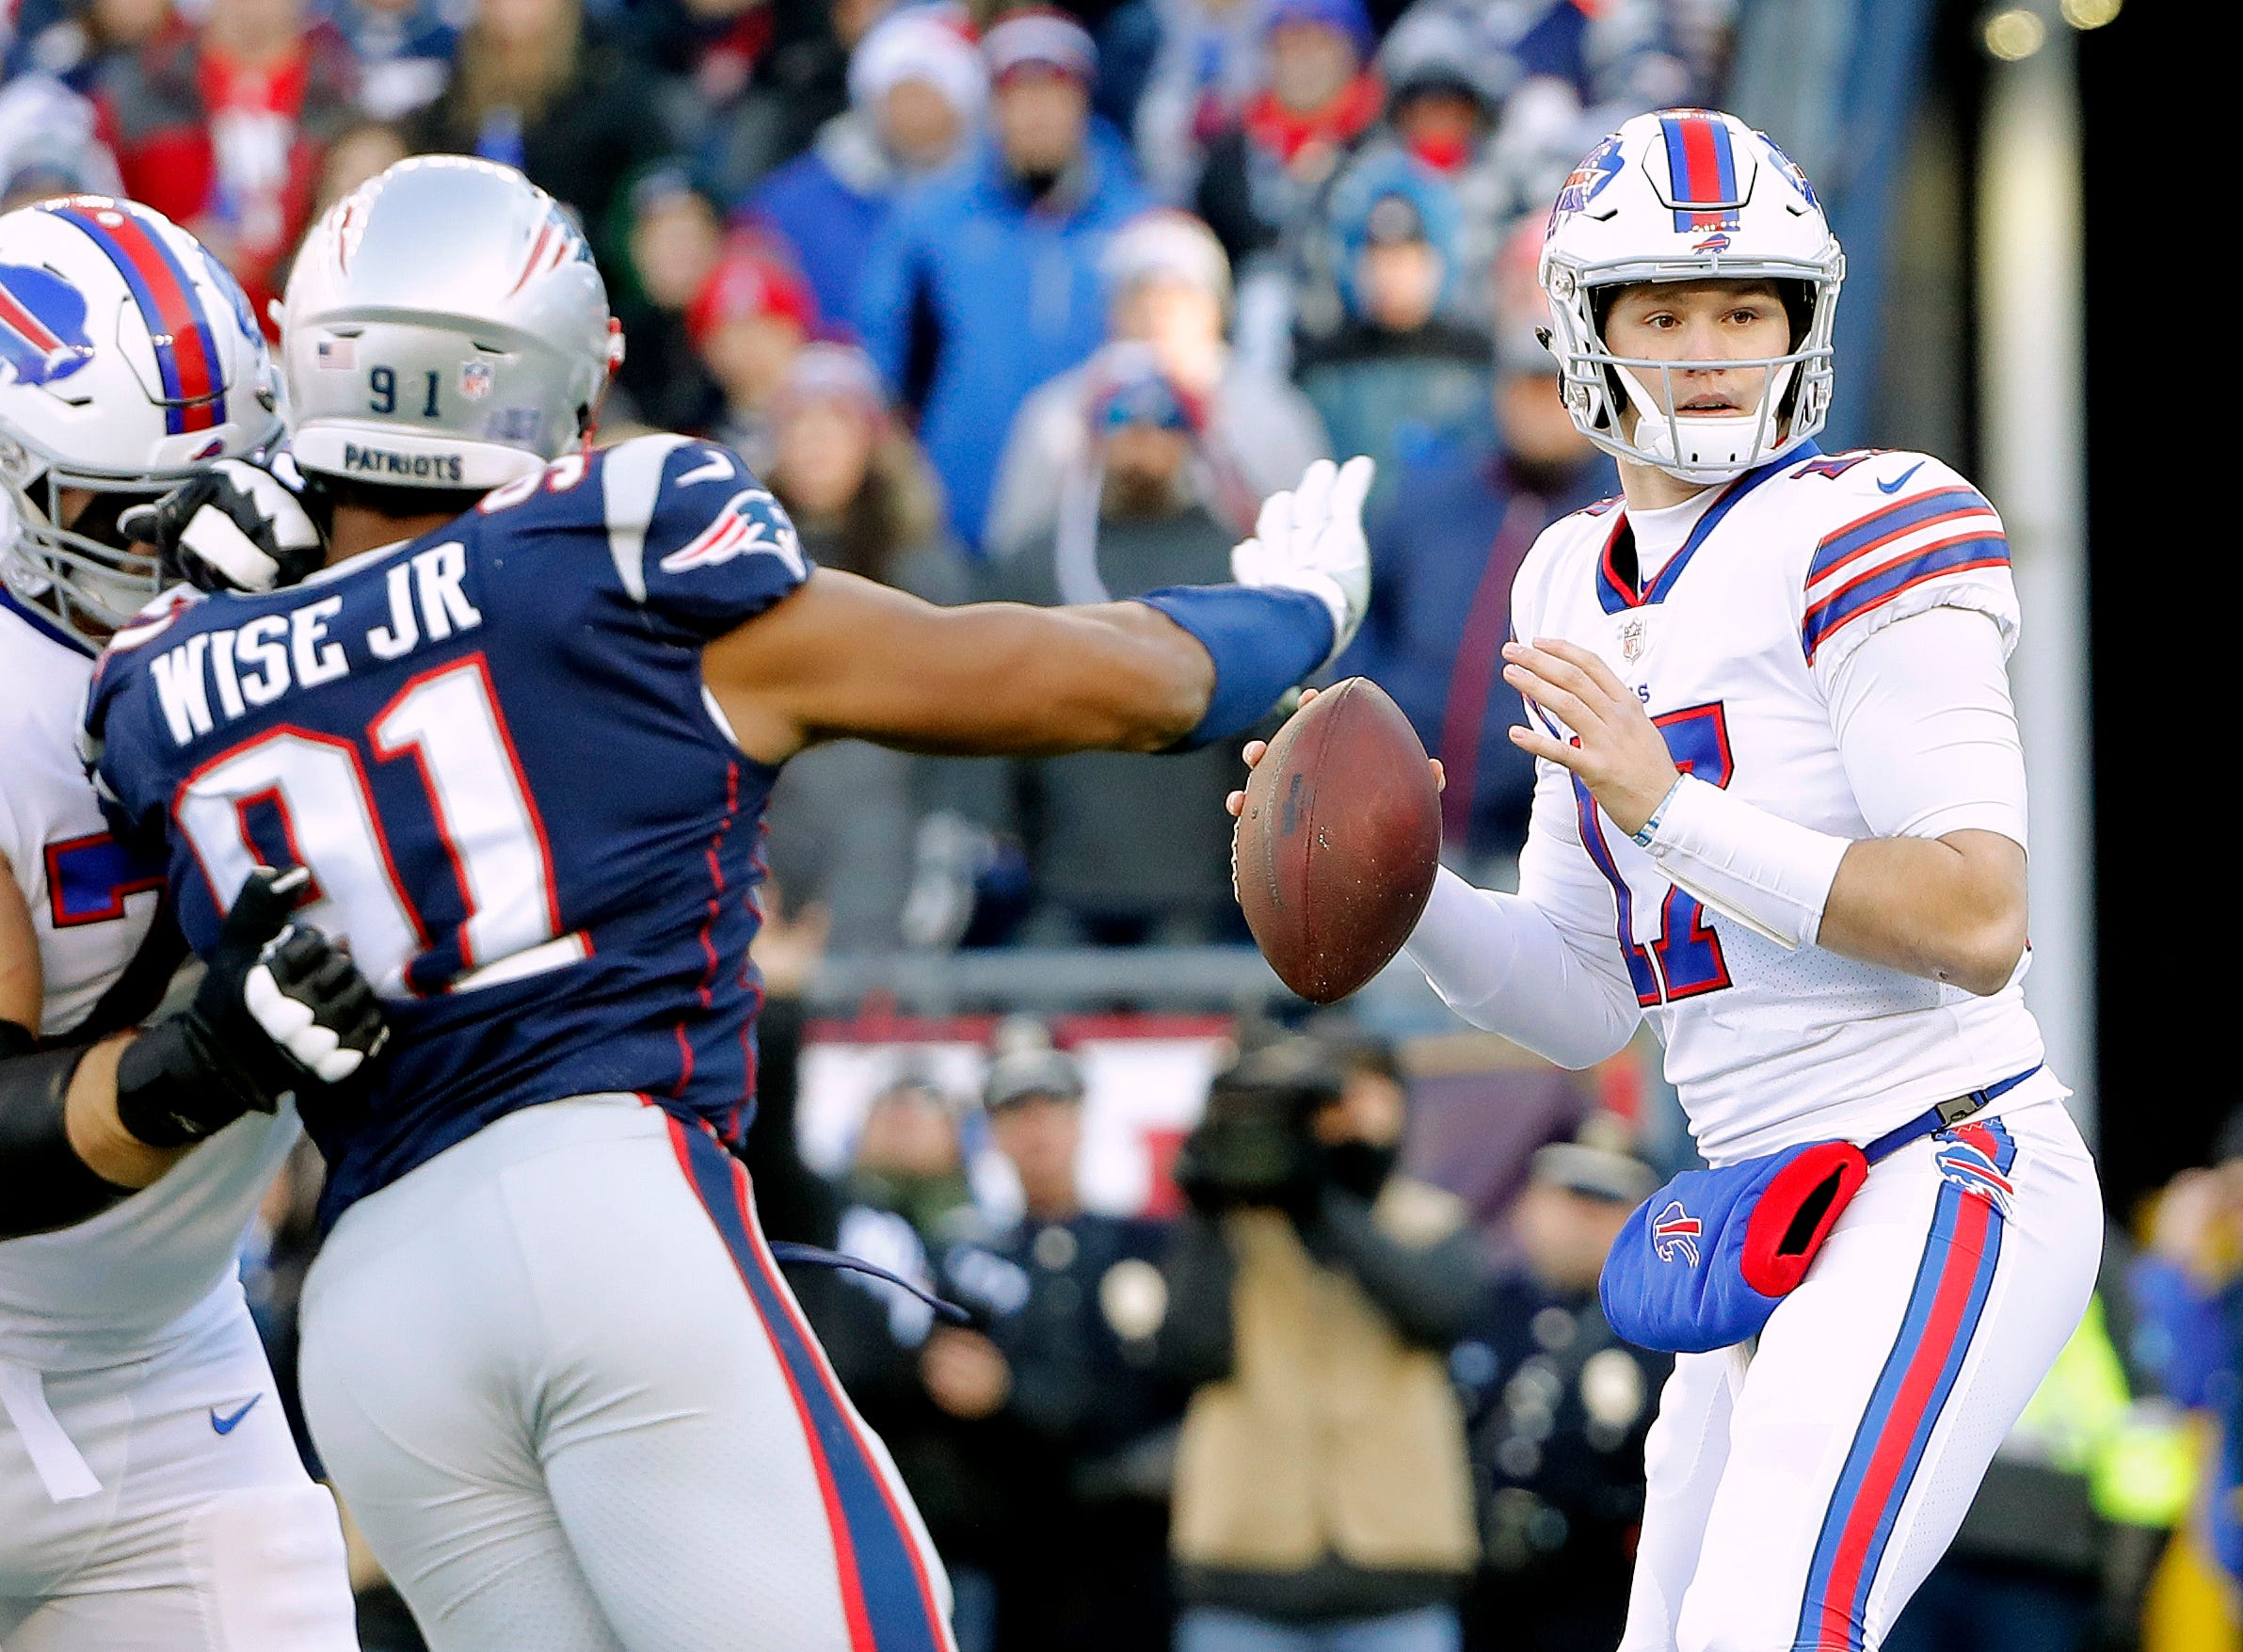 Dec 23, 2018; Foxborough, MA, USA; Buffalo Bills quarterback Josh Allen (17) looks to pass under a rush from New England Patriots defensive end Deatrich Wise (91) during the first quarter at Gillette Stadium. Mandatory Credit: Winslow Townson-USA TODAY Sports